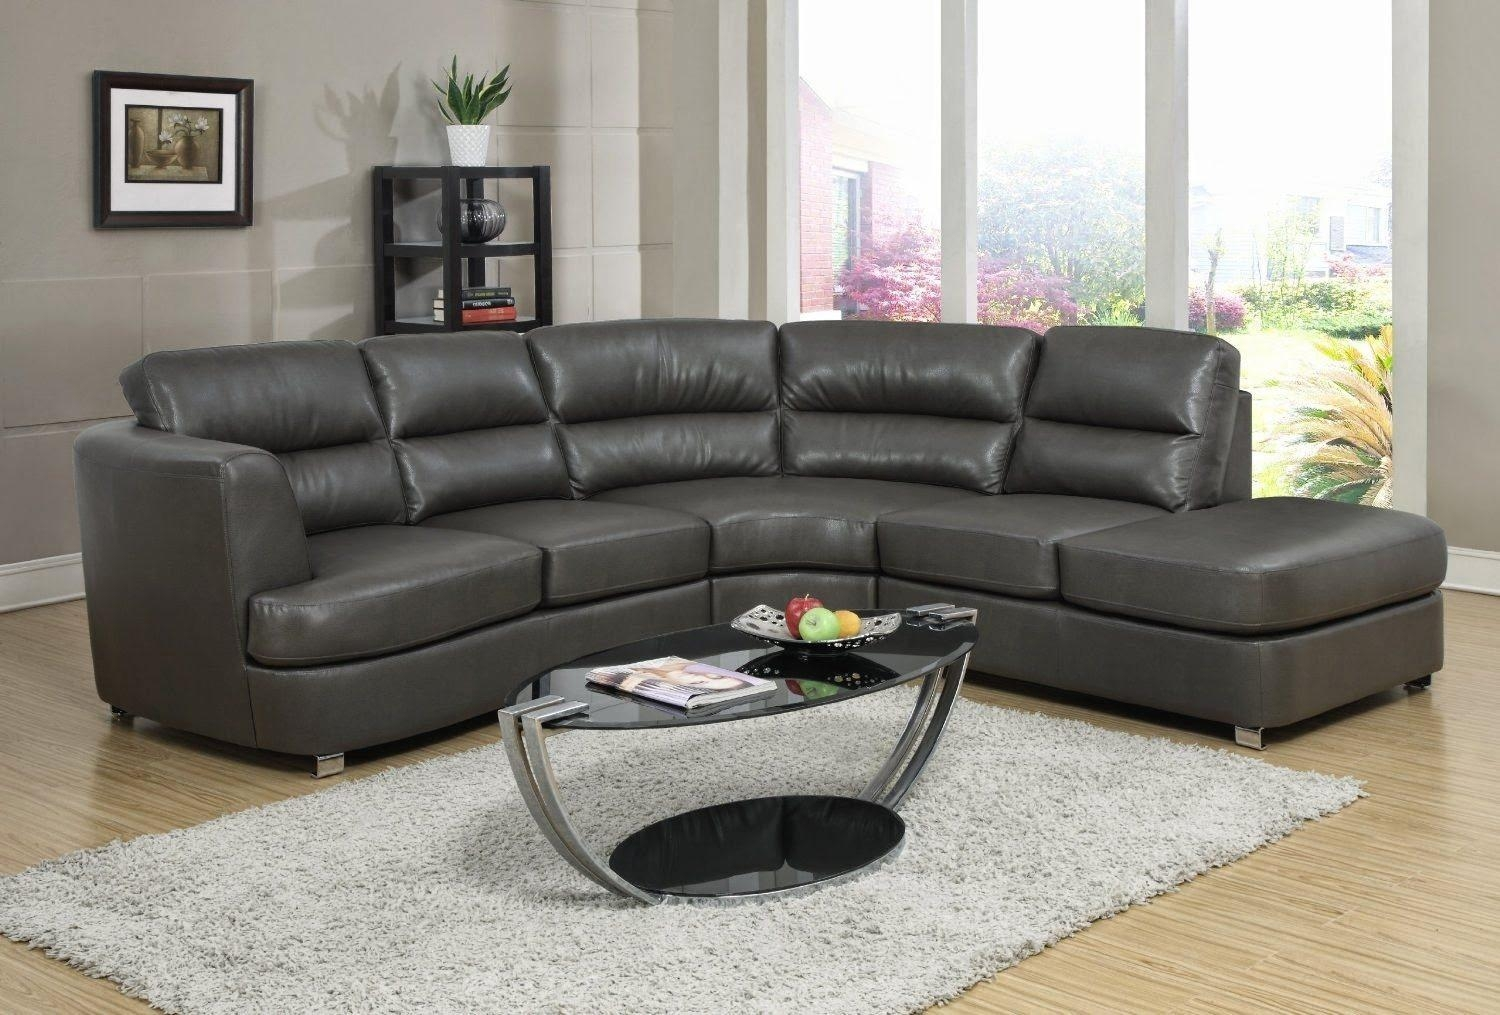 Sofas Center : 31 Marvelous Charcoal Leather Sofa Photos Design Within Charcoal Grey Leather Sofas (View 3 of 20)